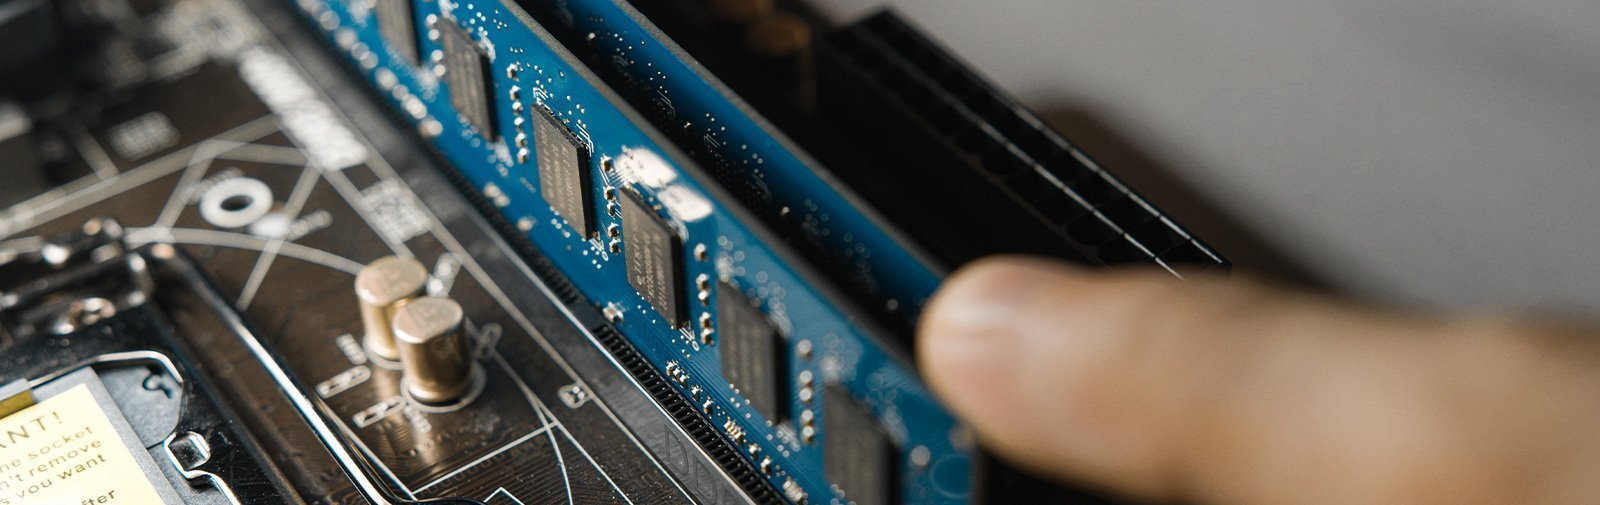 How Much RAM Do I Need in My Laptop